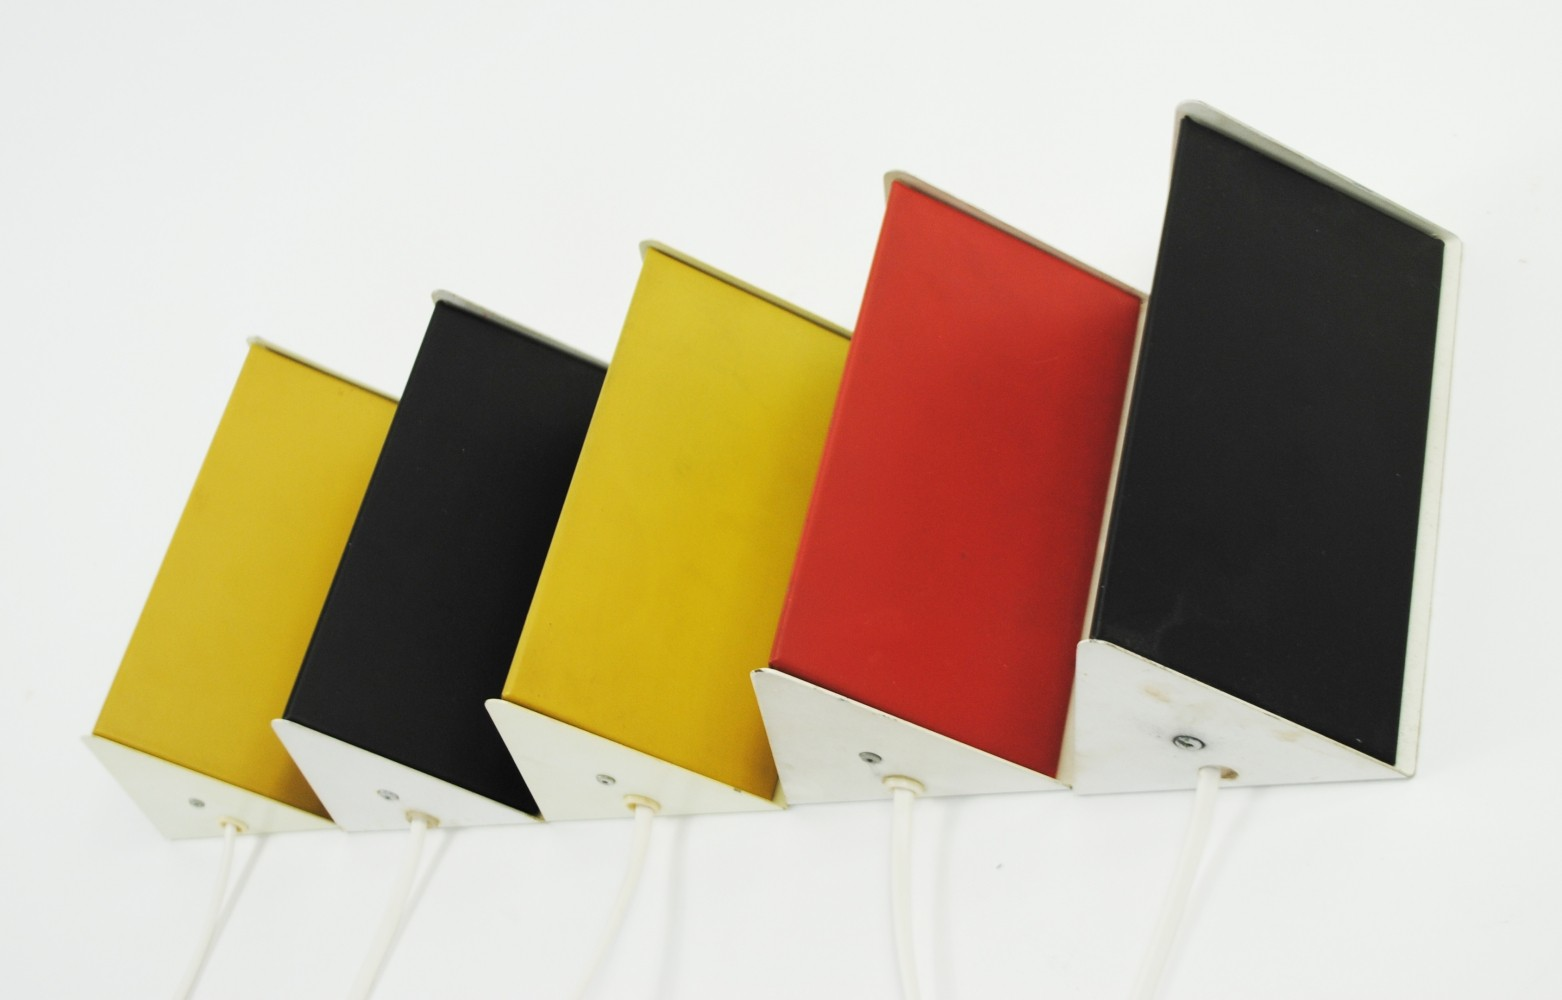 5 x wall lamp by J. Hoogervorst for Anvia Almelo, 1950s